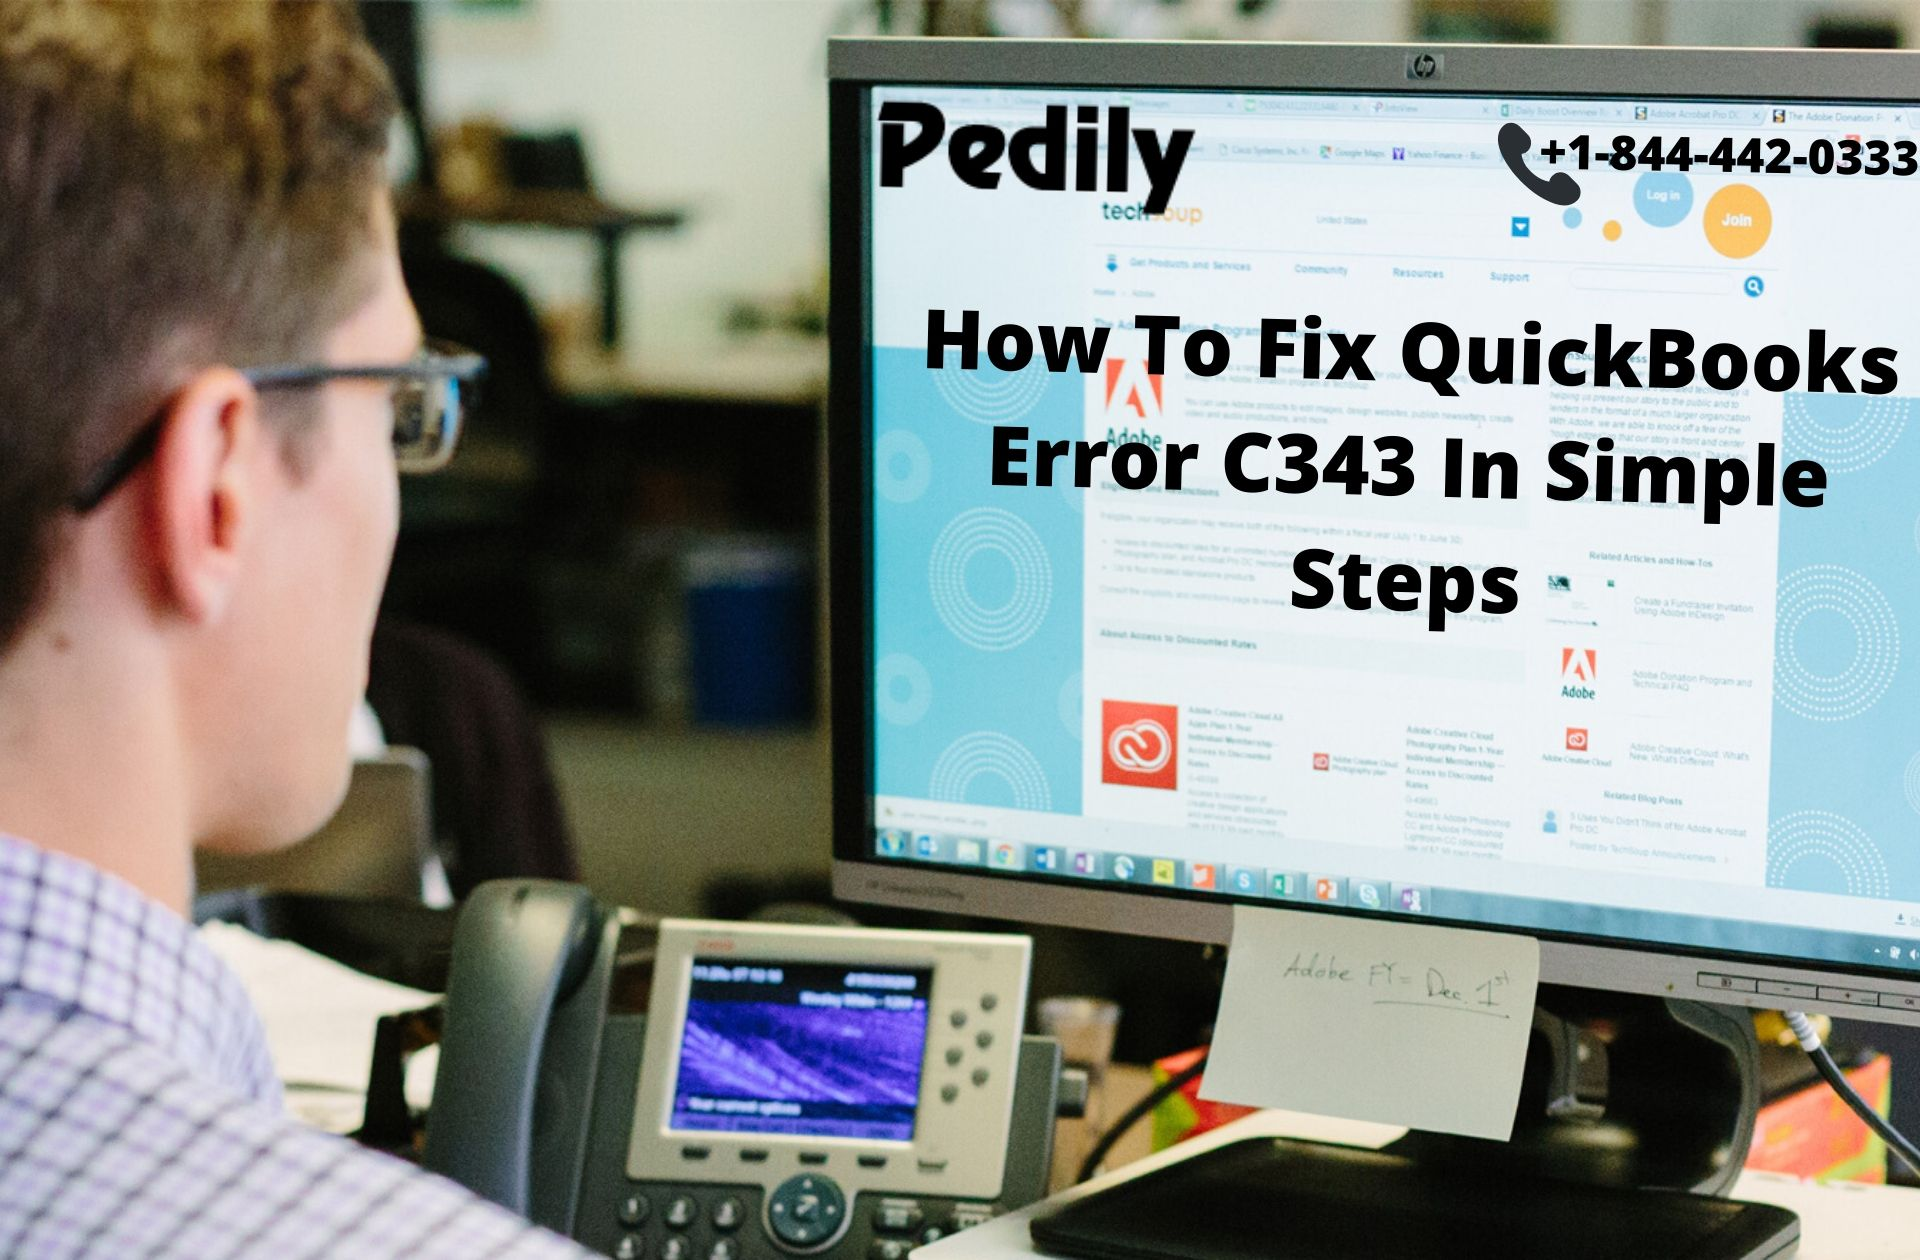 How To Fix QuickBooks Error C343 In Simple Steps